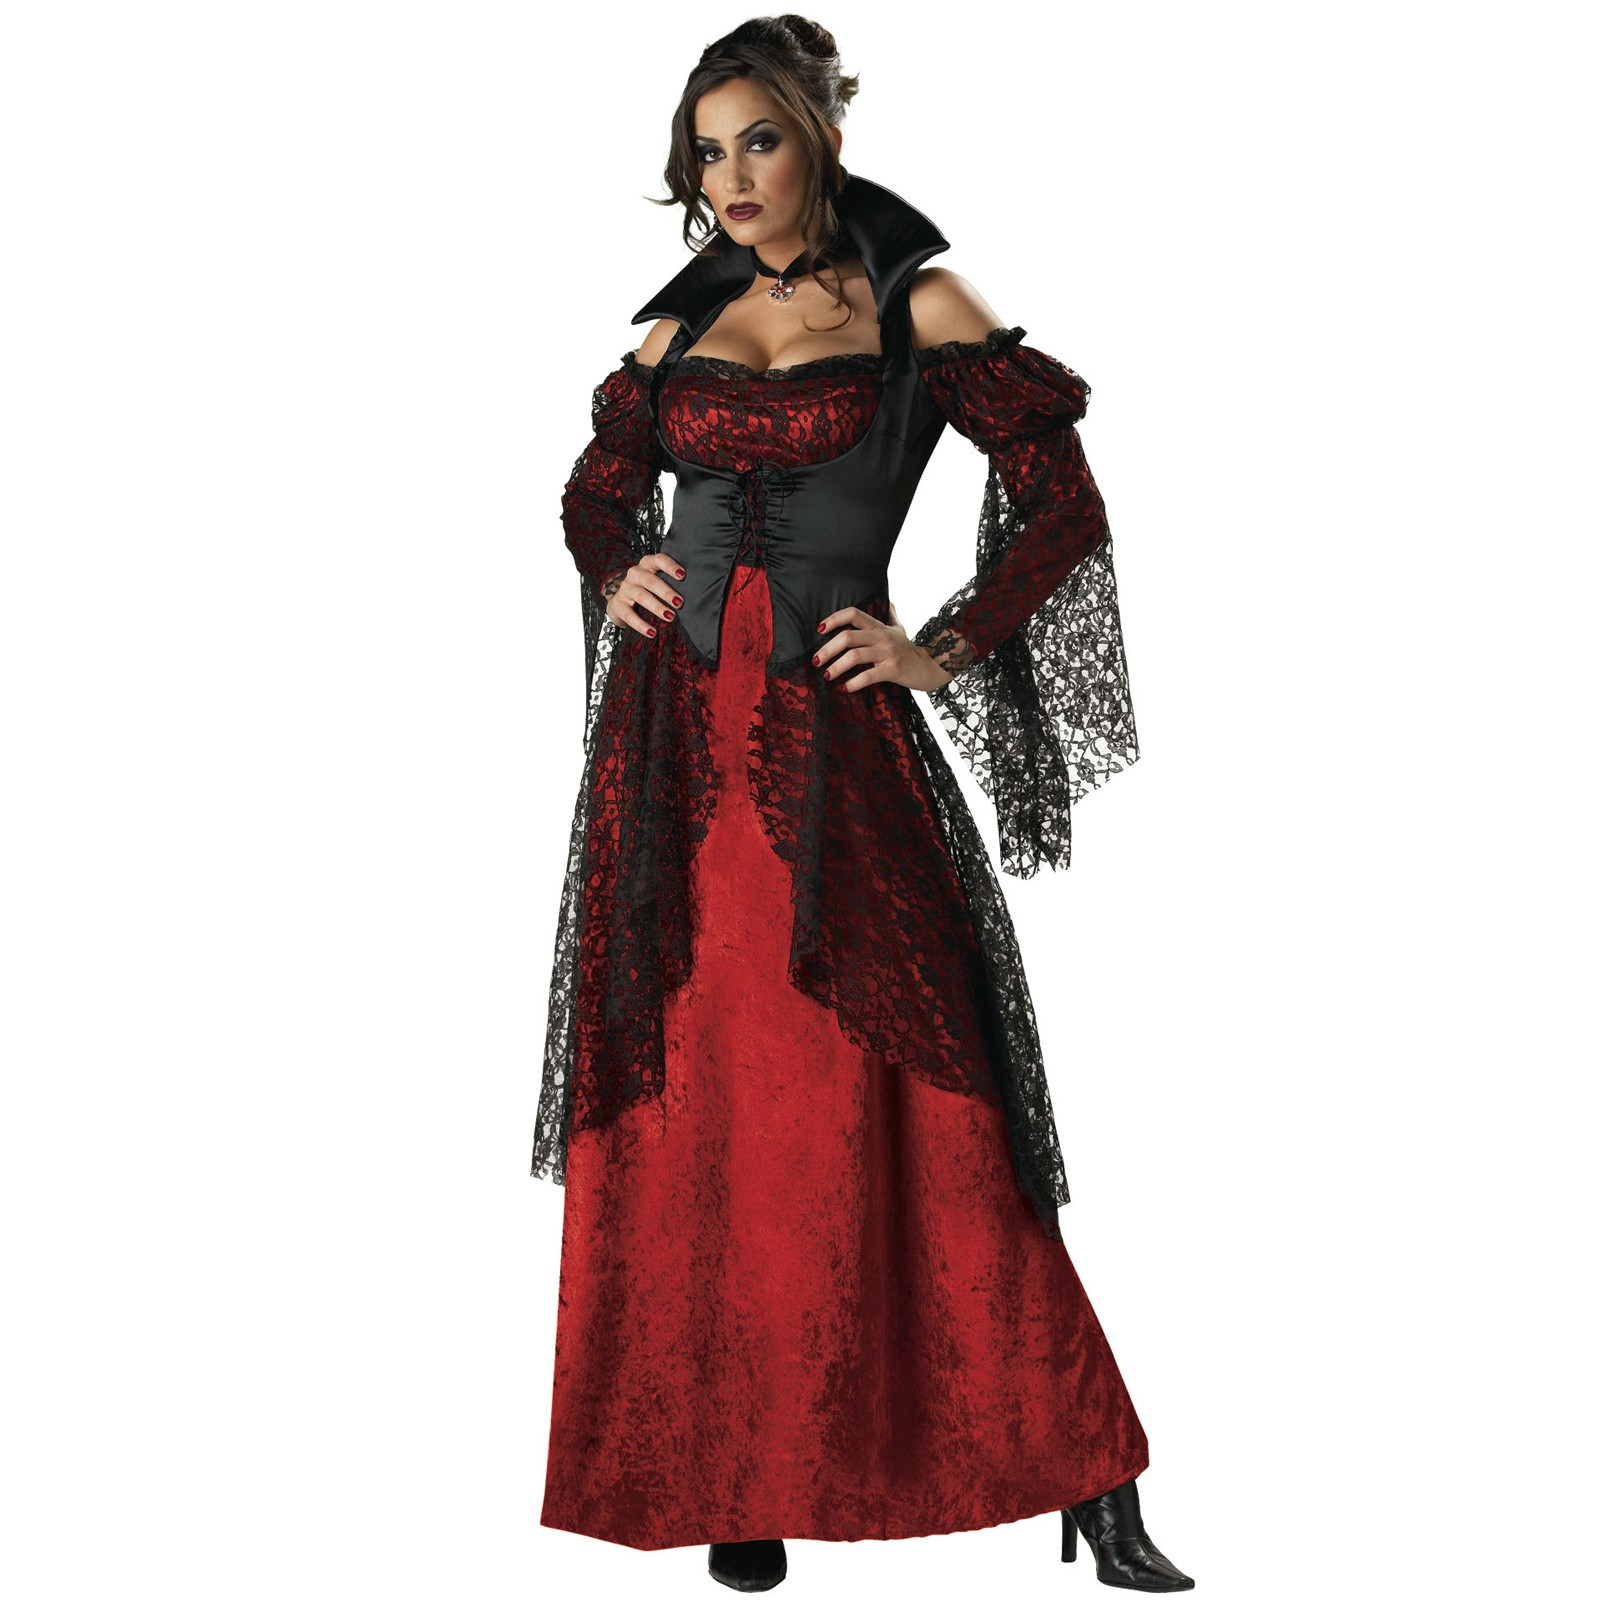 Vampiress Adult Halloween Costume